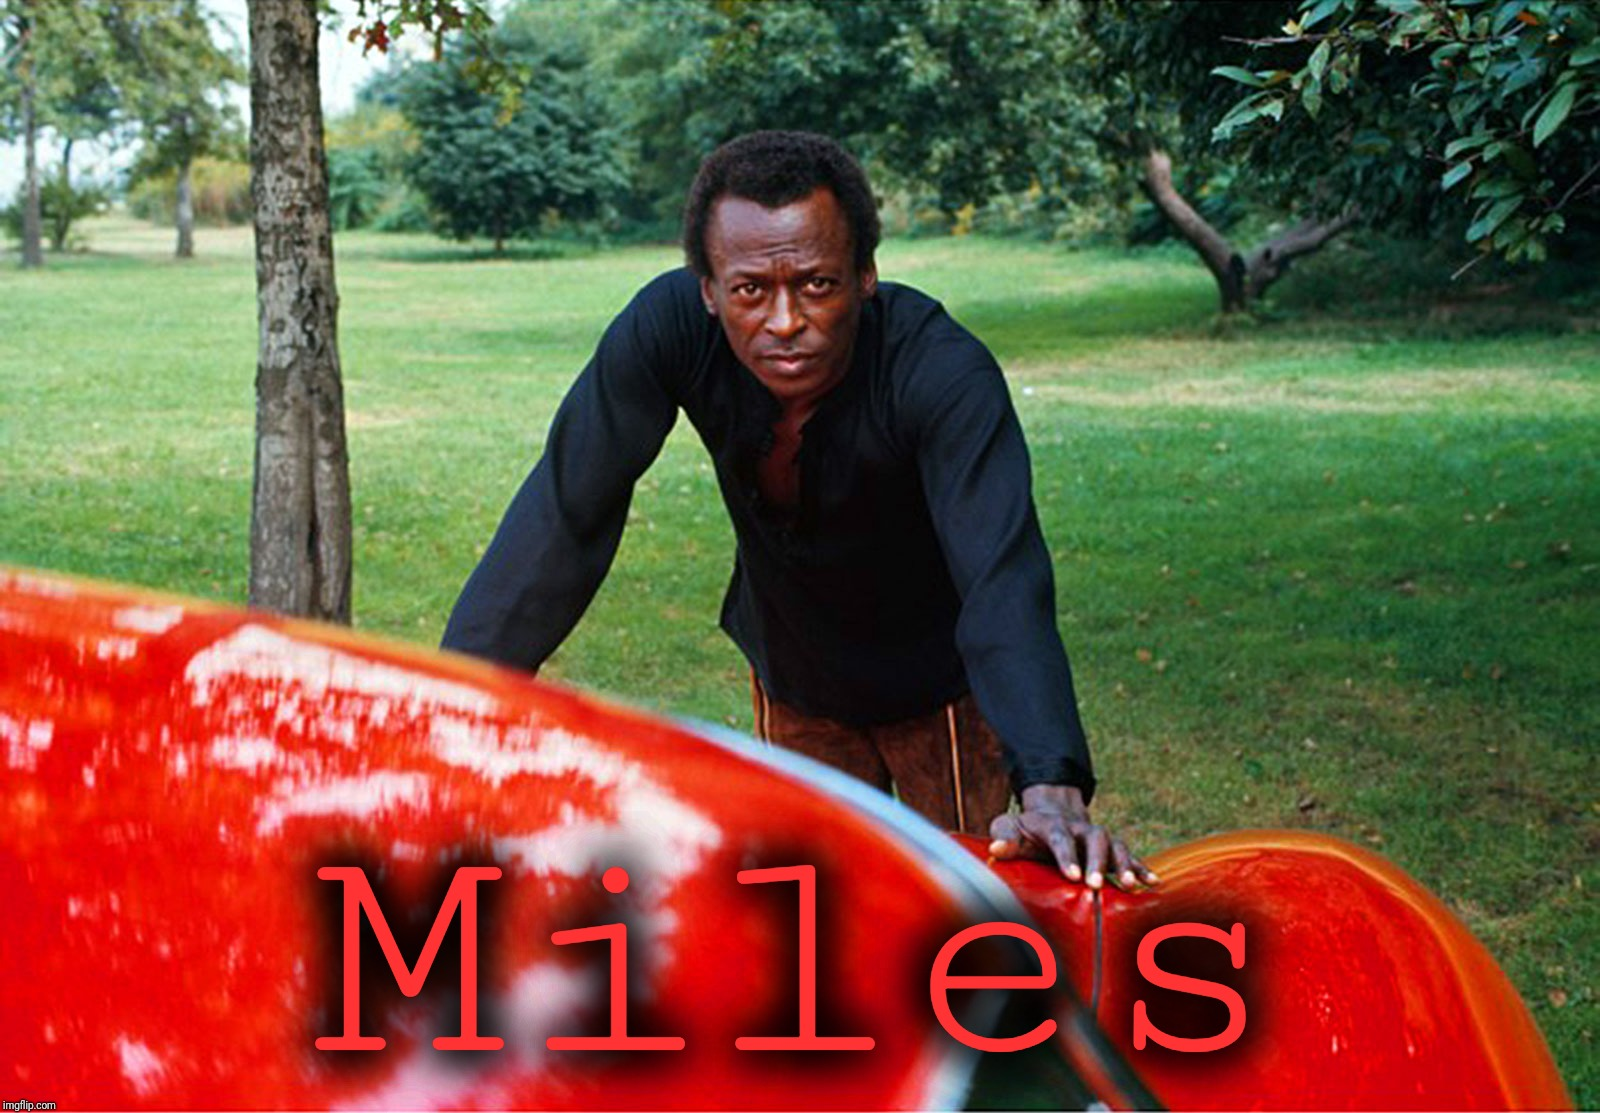 Miles | made w/ Imgflip meme maker